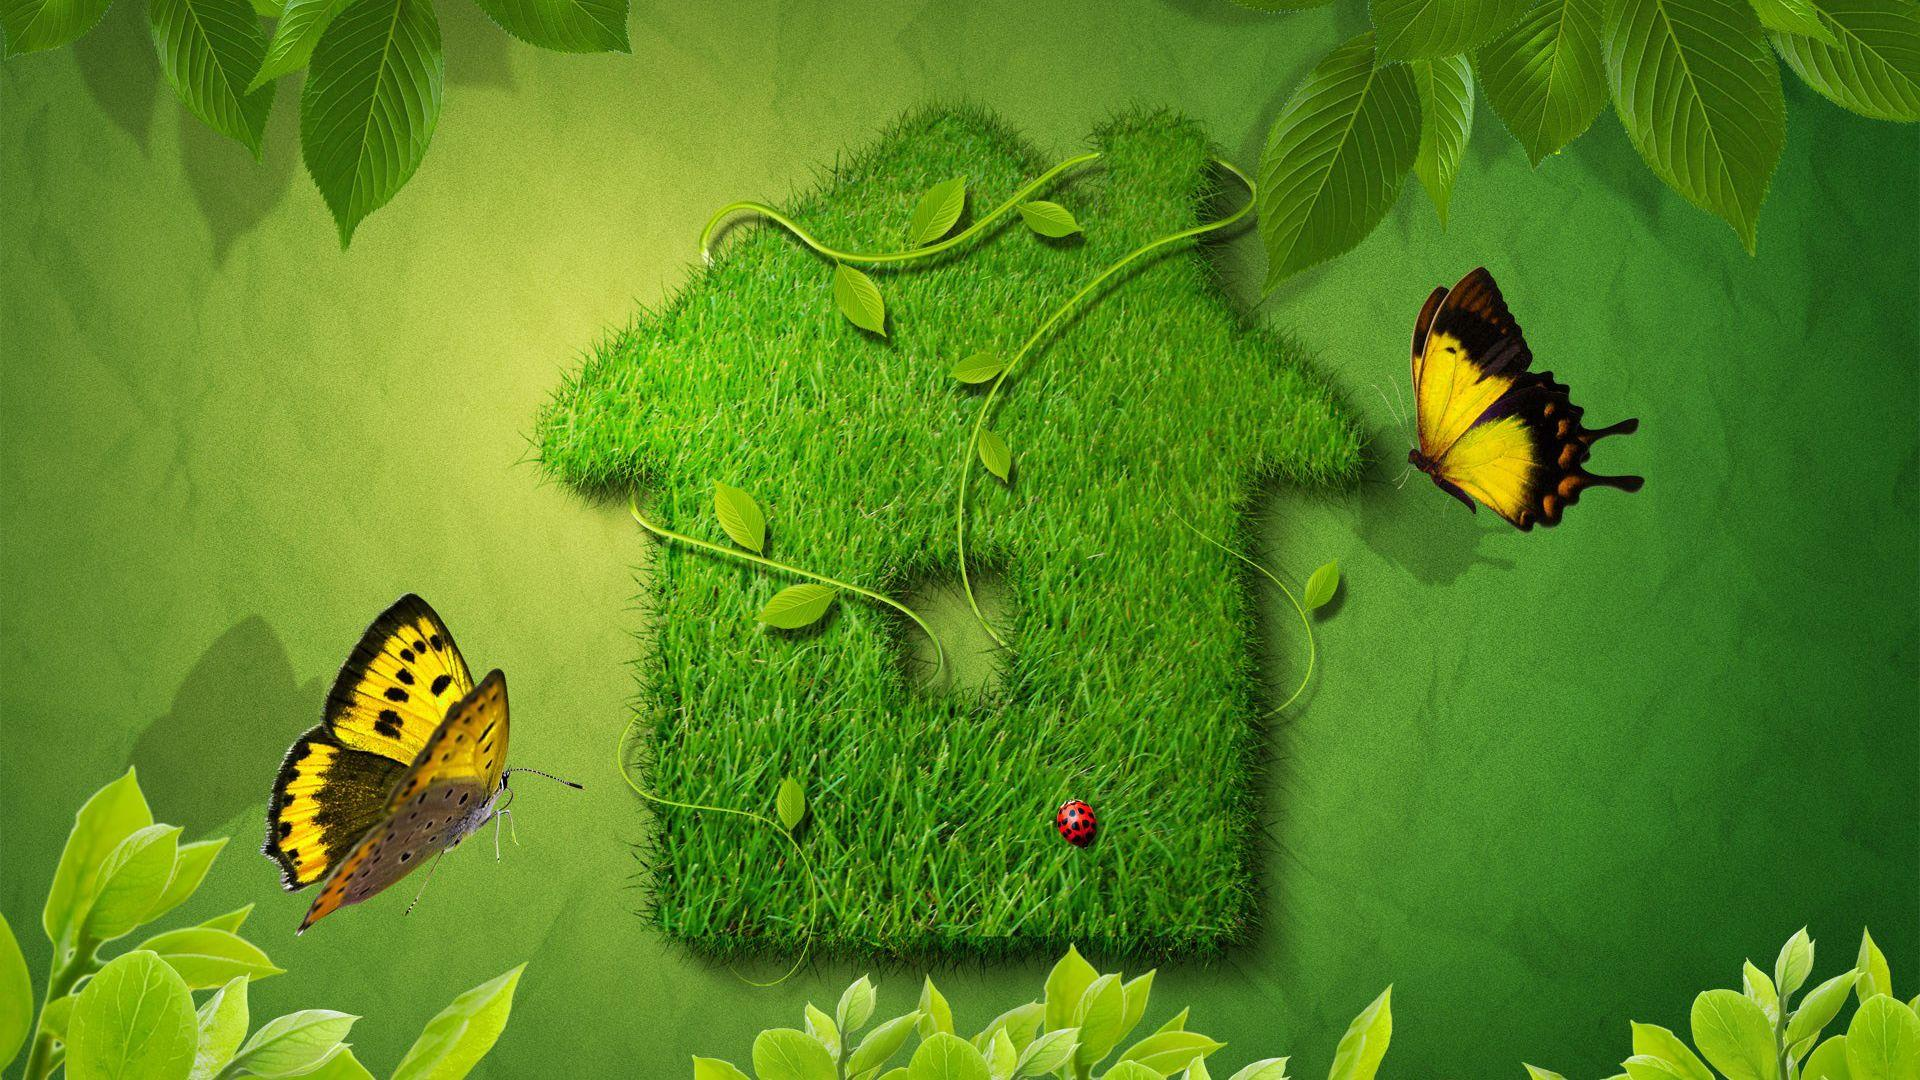 Creative Green House – 1080p HD Wallpaper0 | Stuff to Buy ...